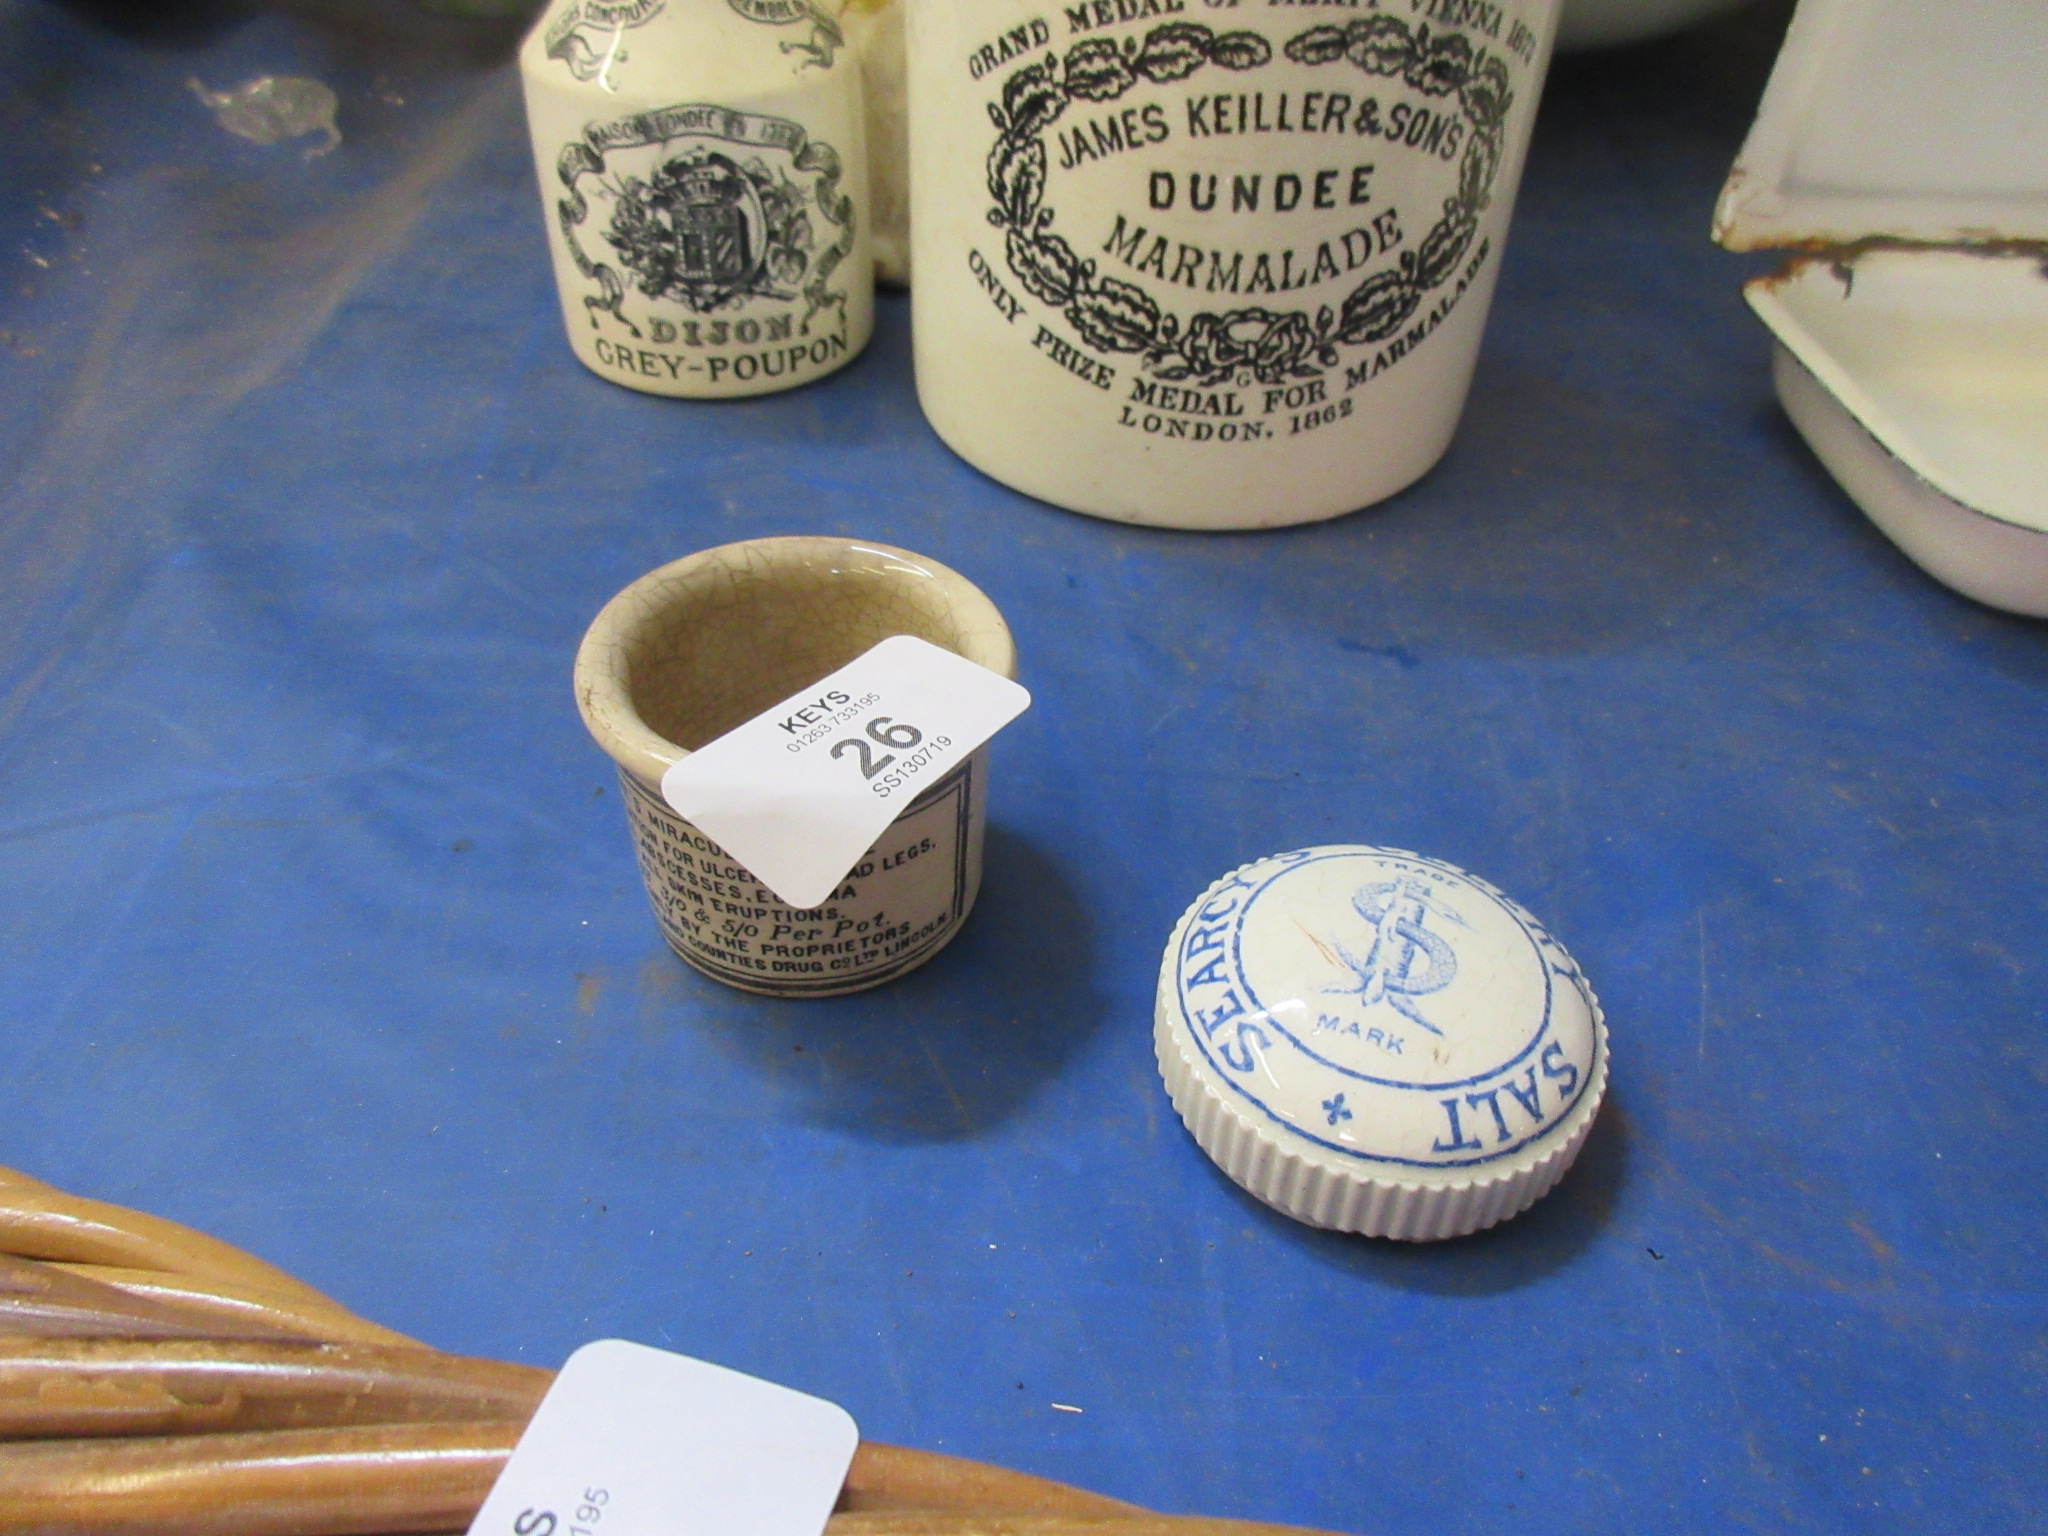 A transfer printed pot for Clarke's miraculous salve, Together with a similar pot lid for Searcy's